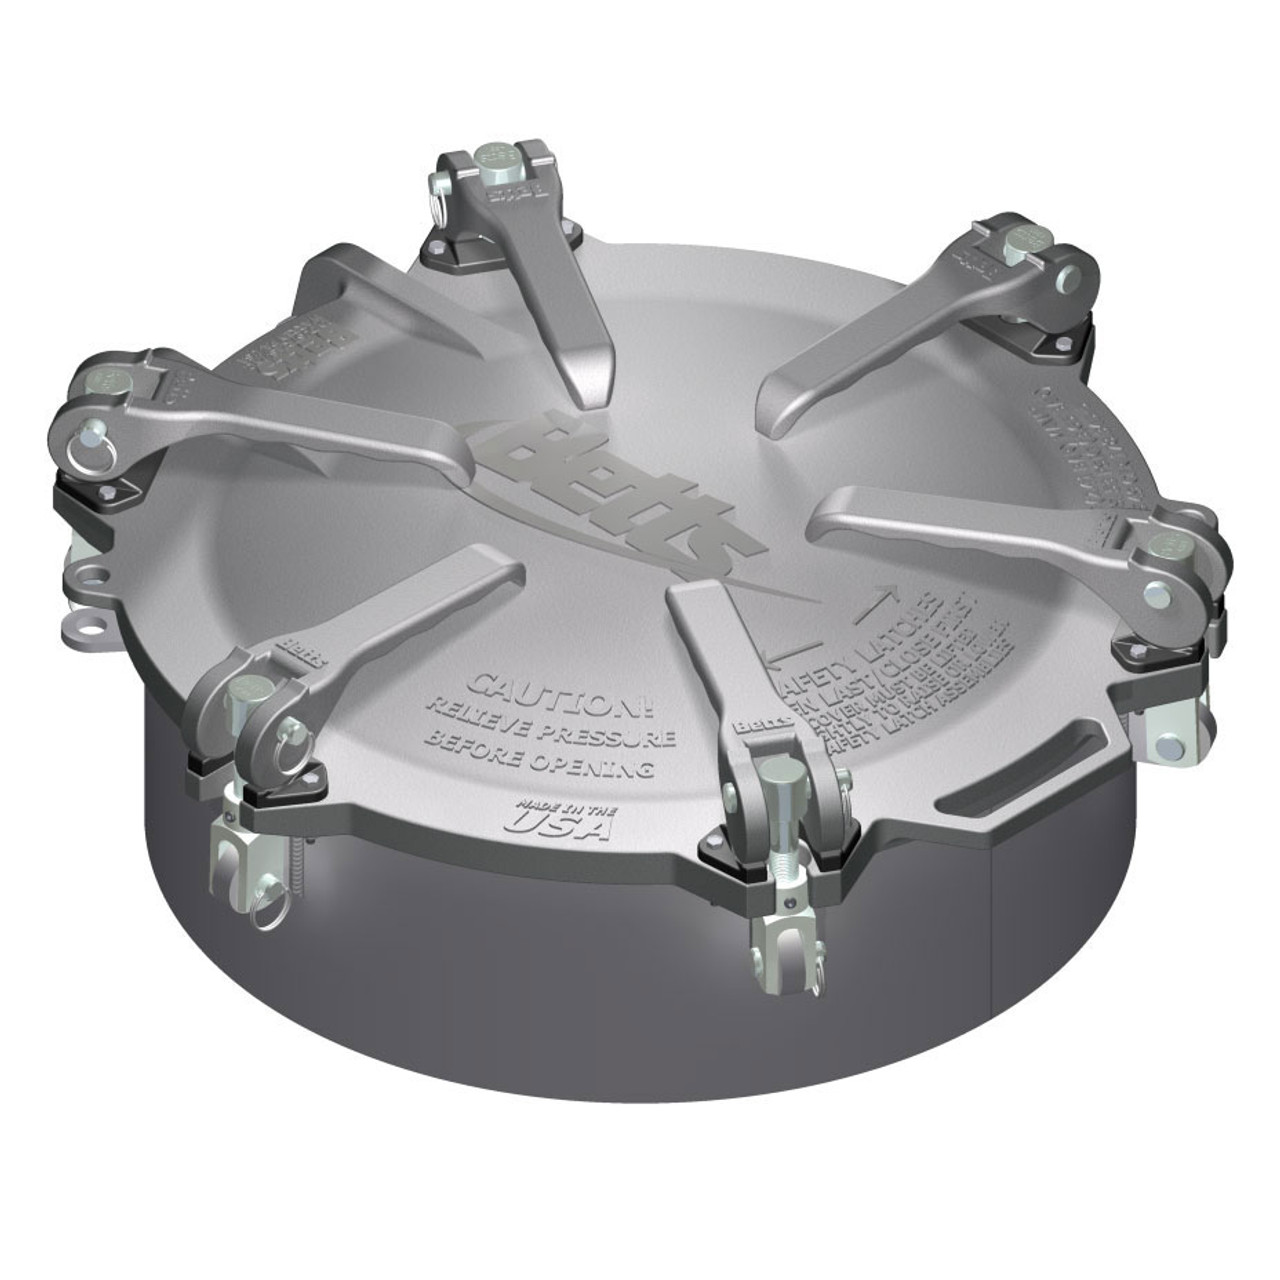 Betts 20 in  Aluminum Cam-Latch Manholes w/ Stainless Steel Hardware